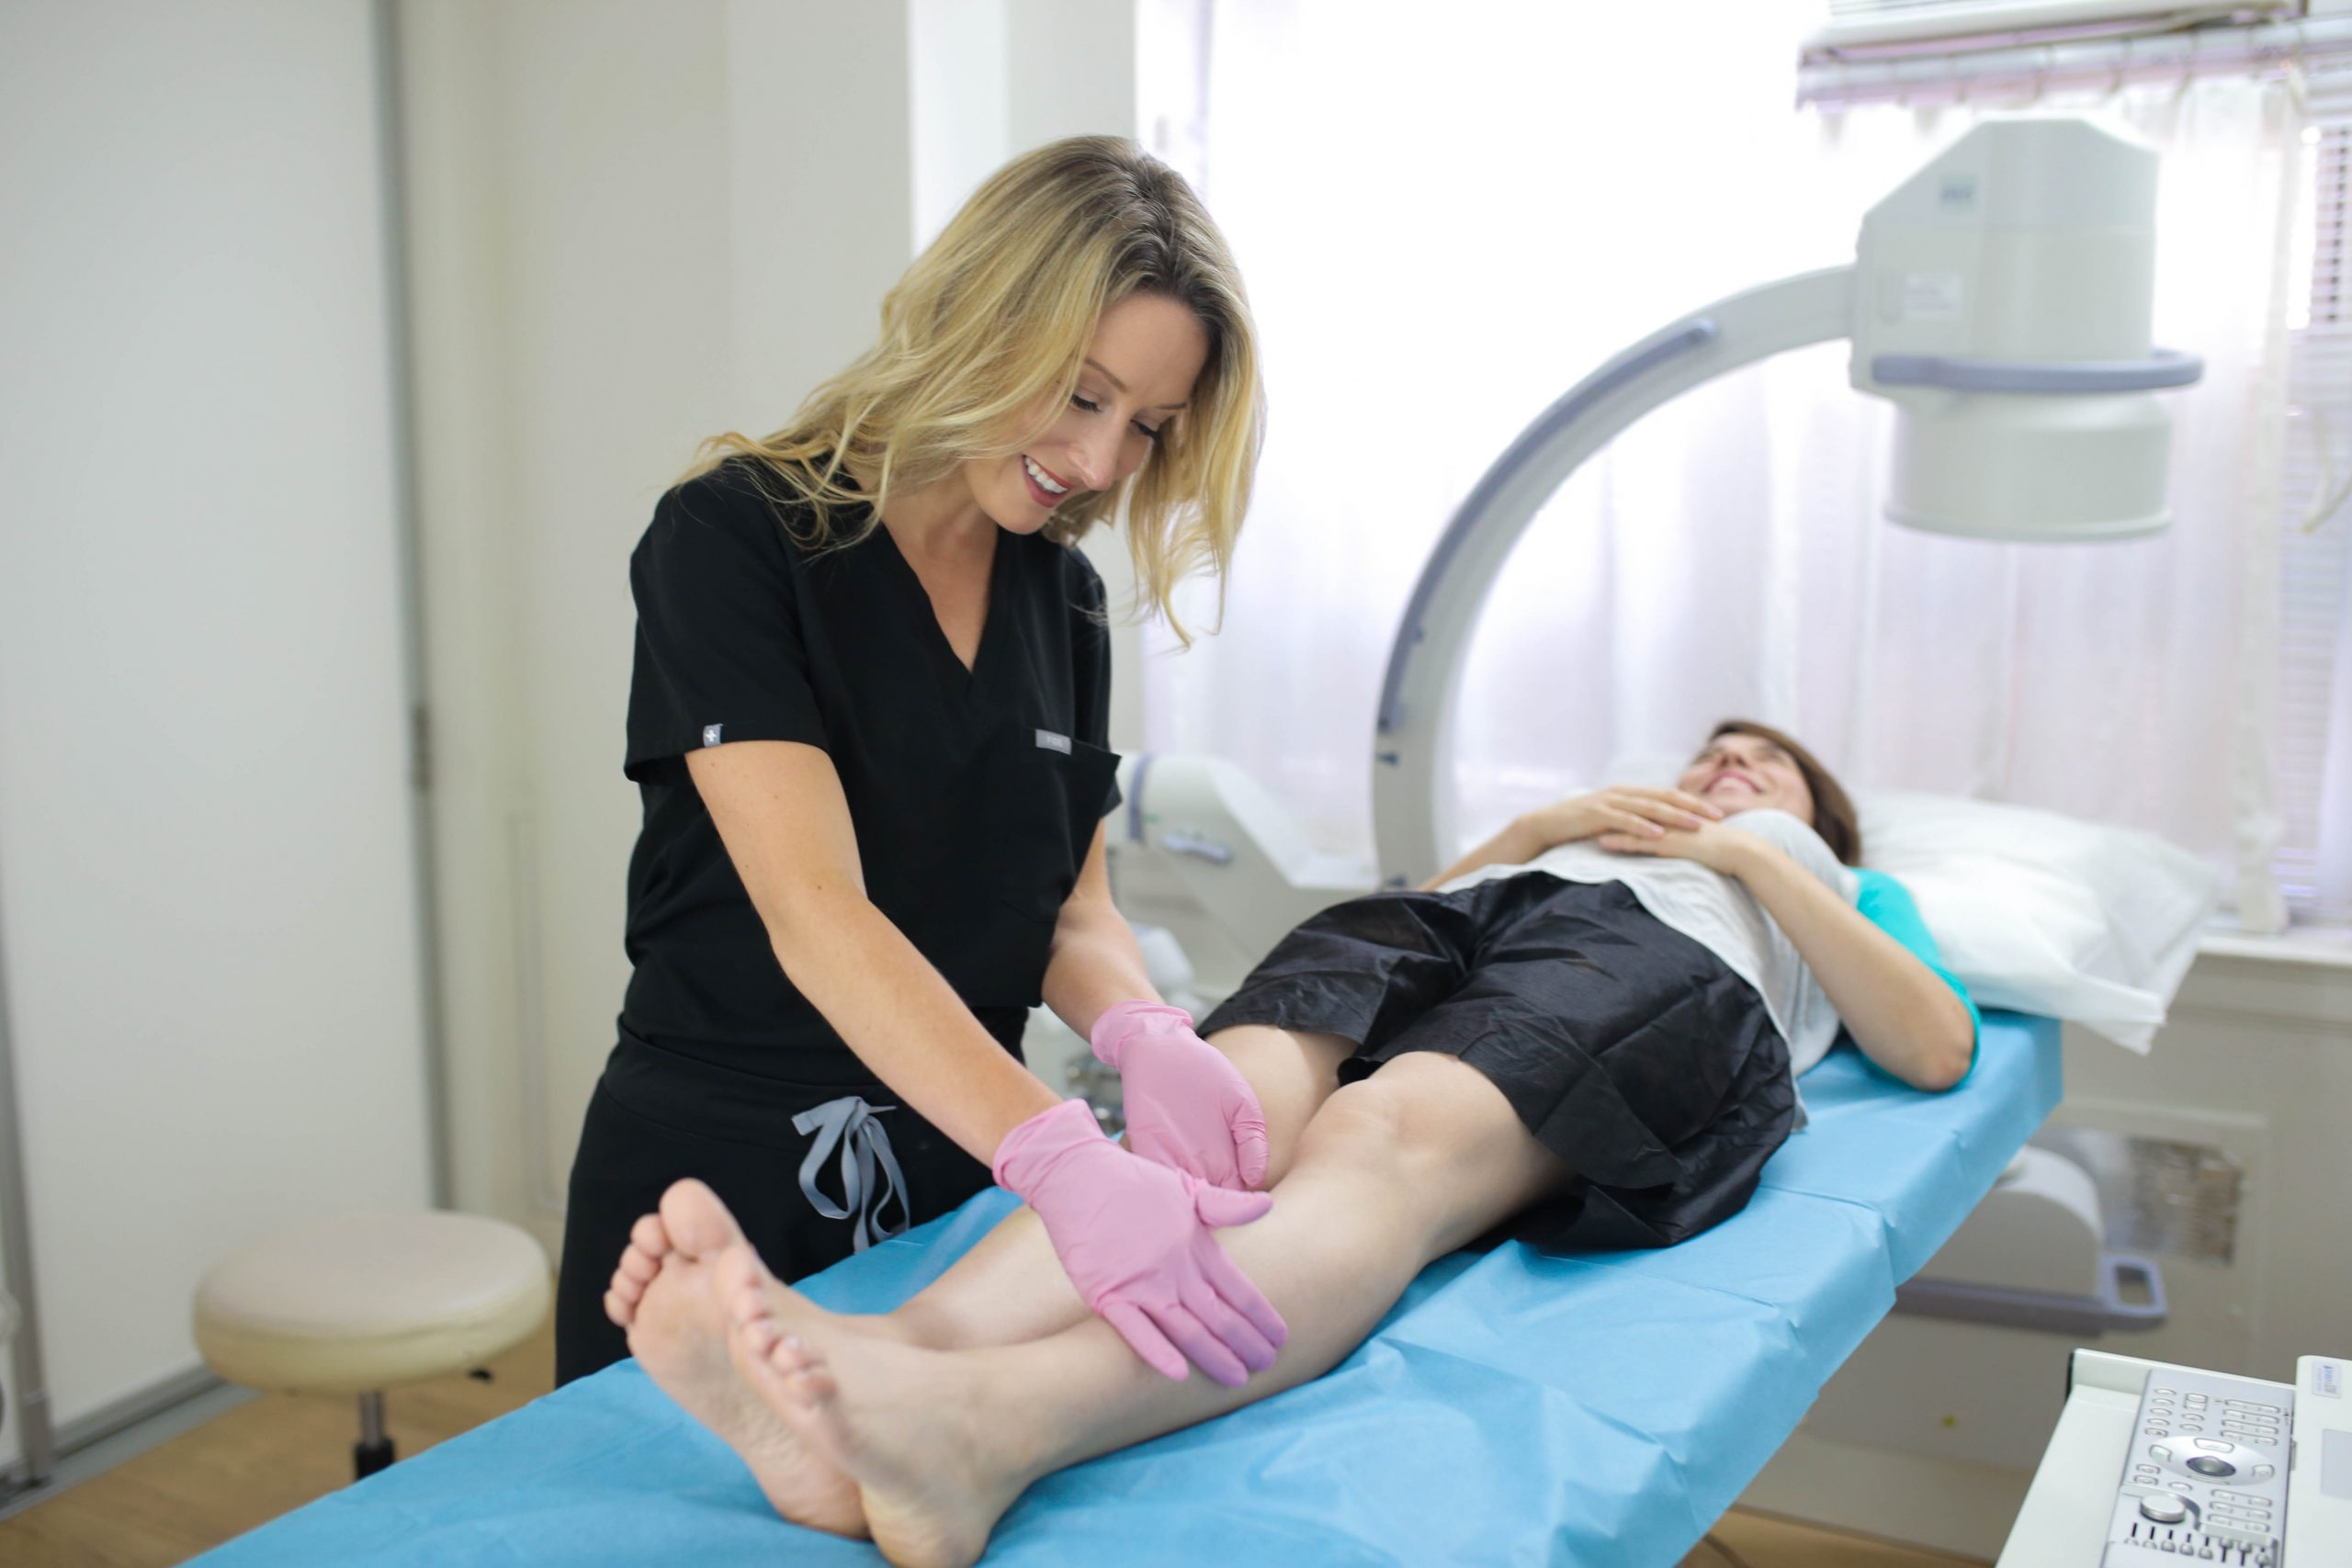 If you're looking for the best vein treatment in North Fork, we've got some valuable tips for you. This article introduces you to the best clinic for vein treatment near North Fork.